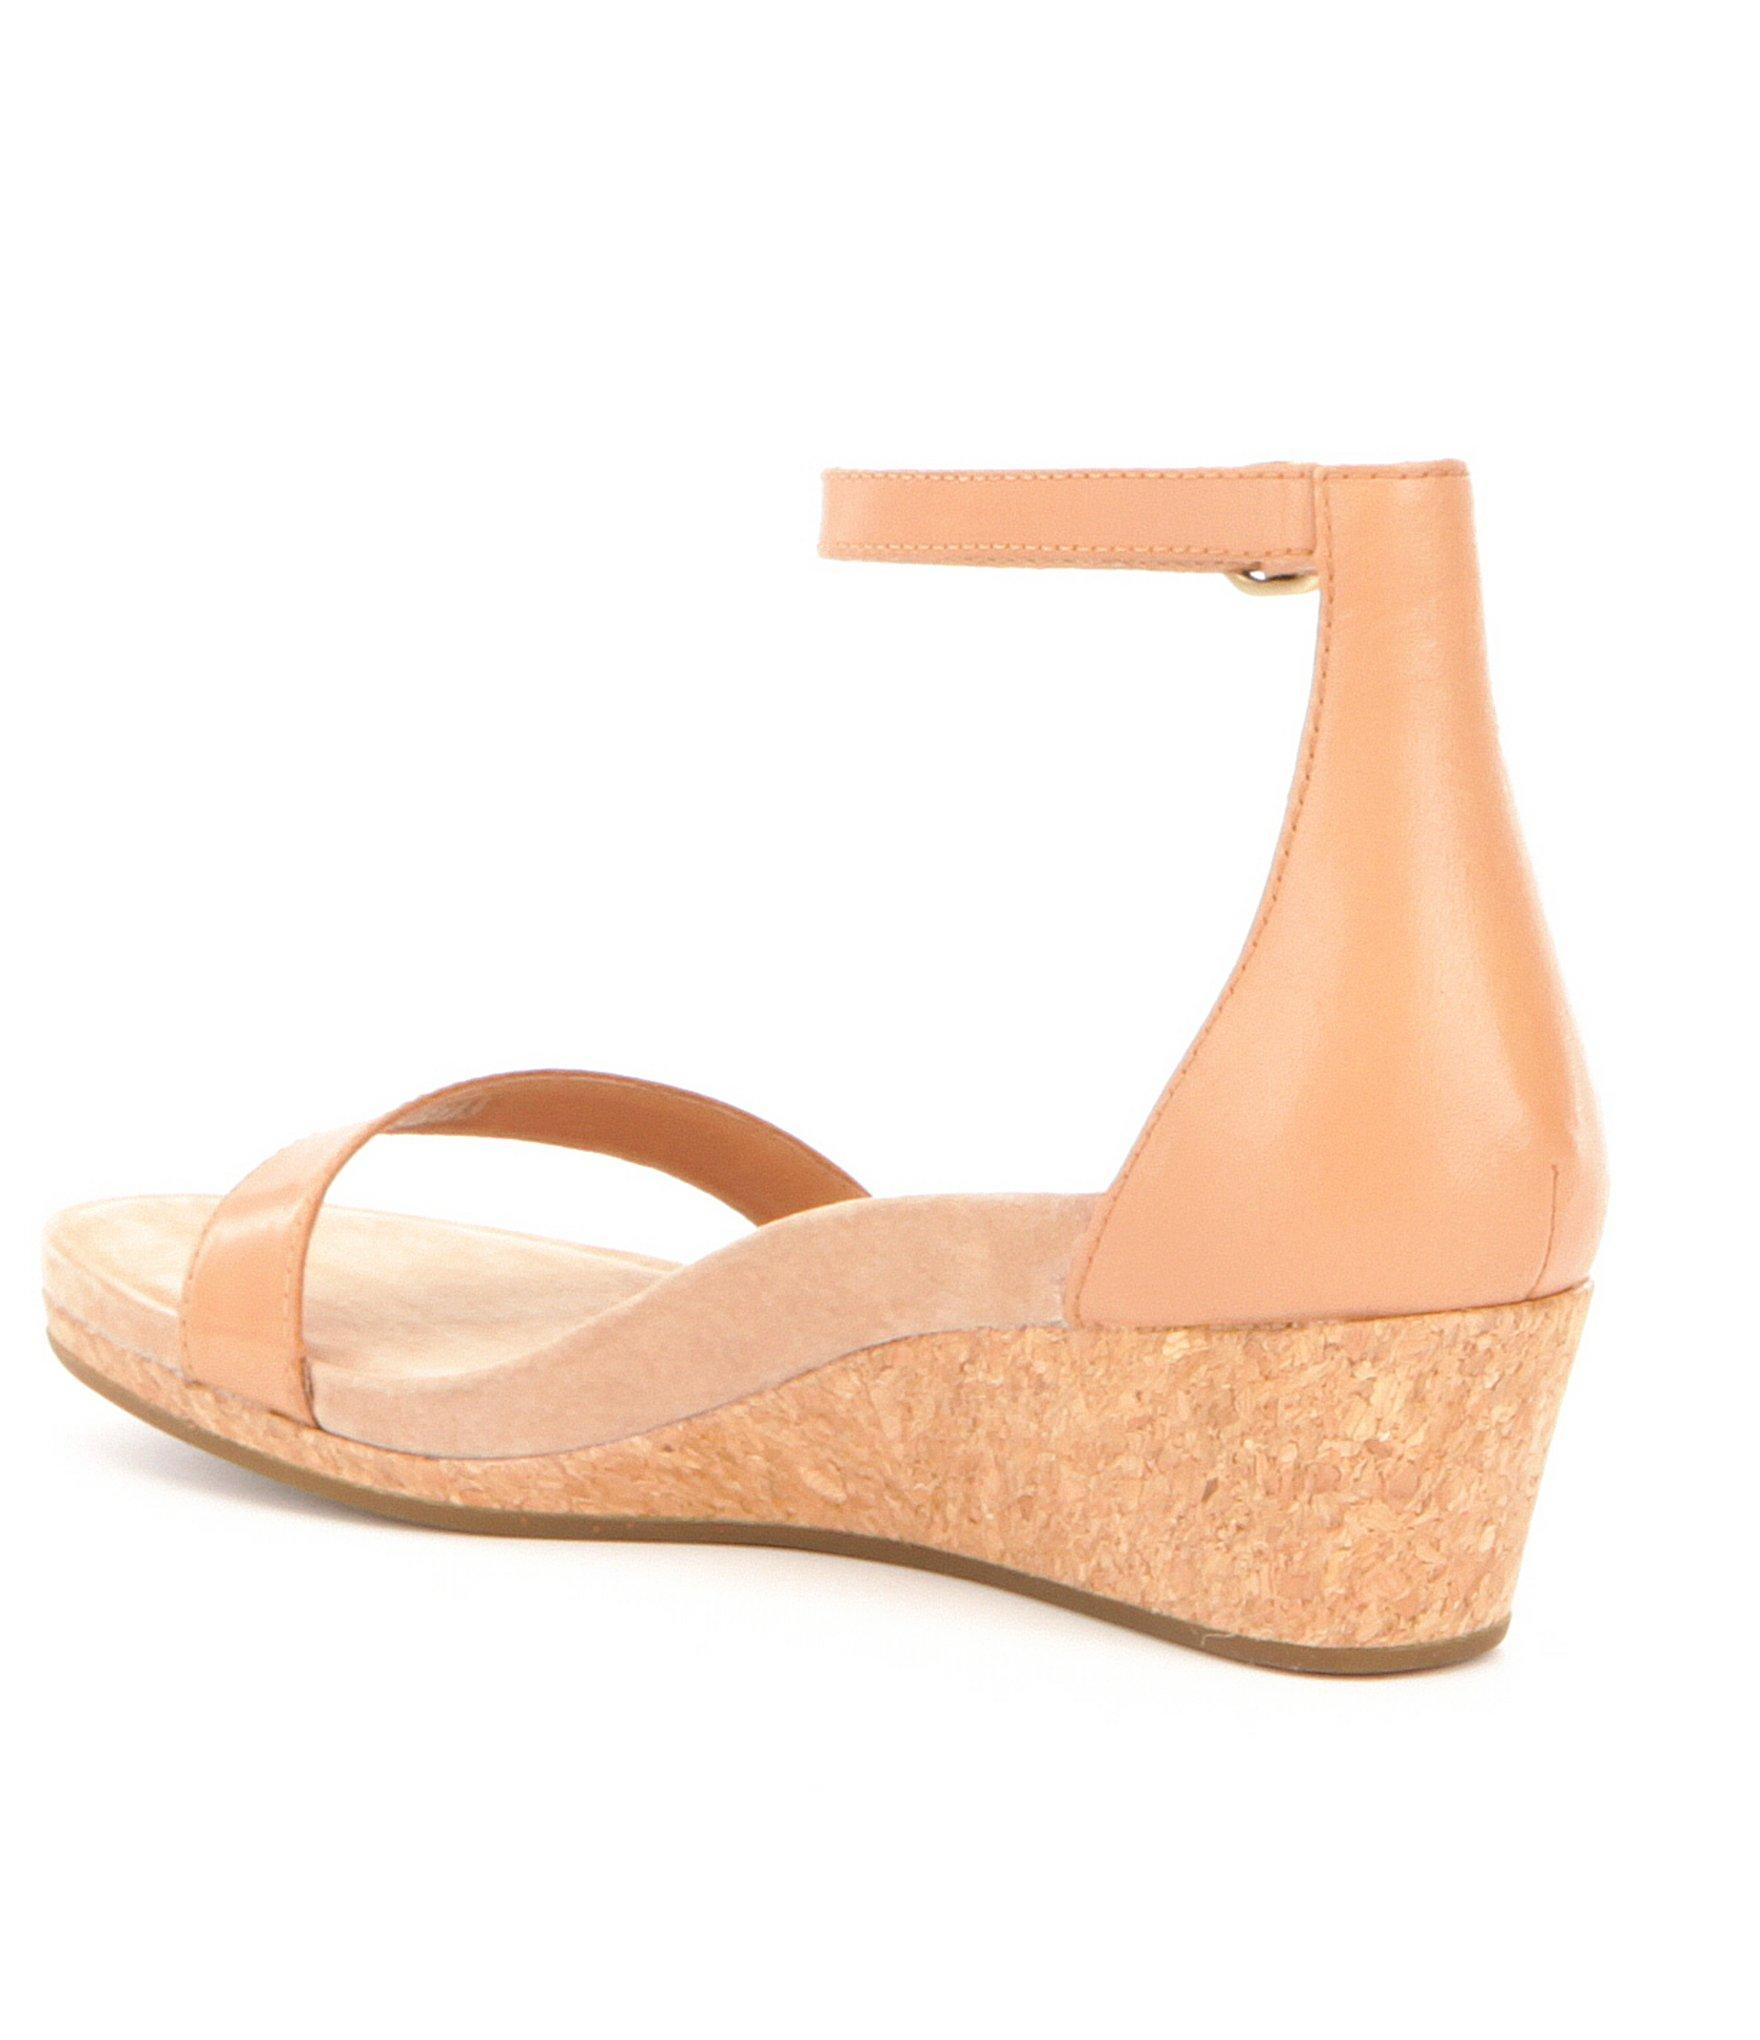 Lyst Ugg 174 Emilia Ankle Strap Wedge Sandals In Natural